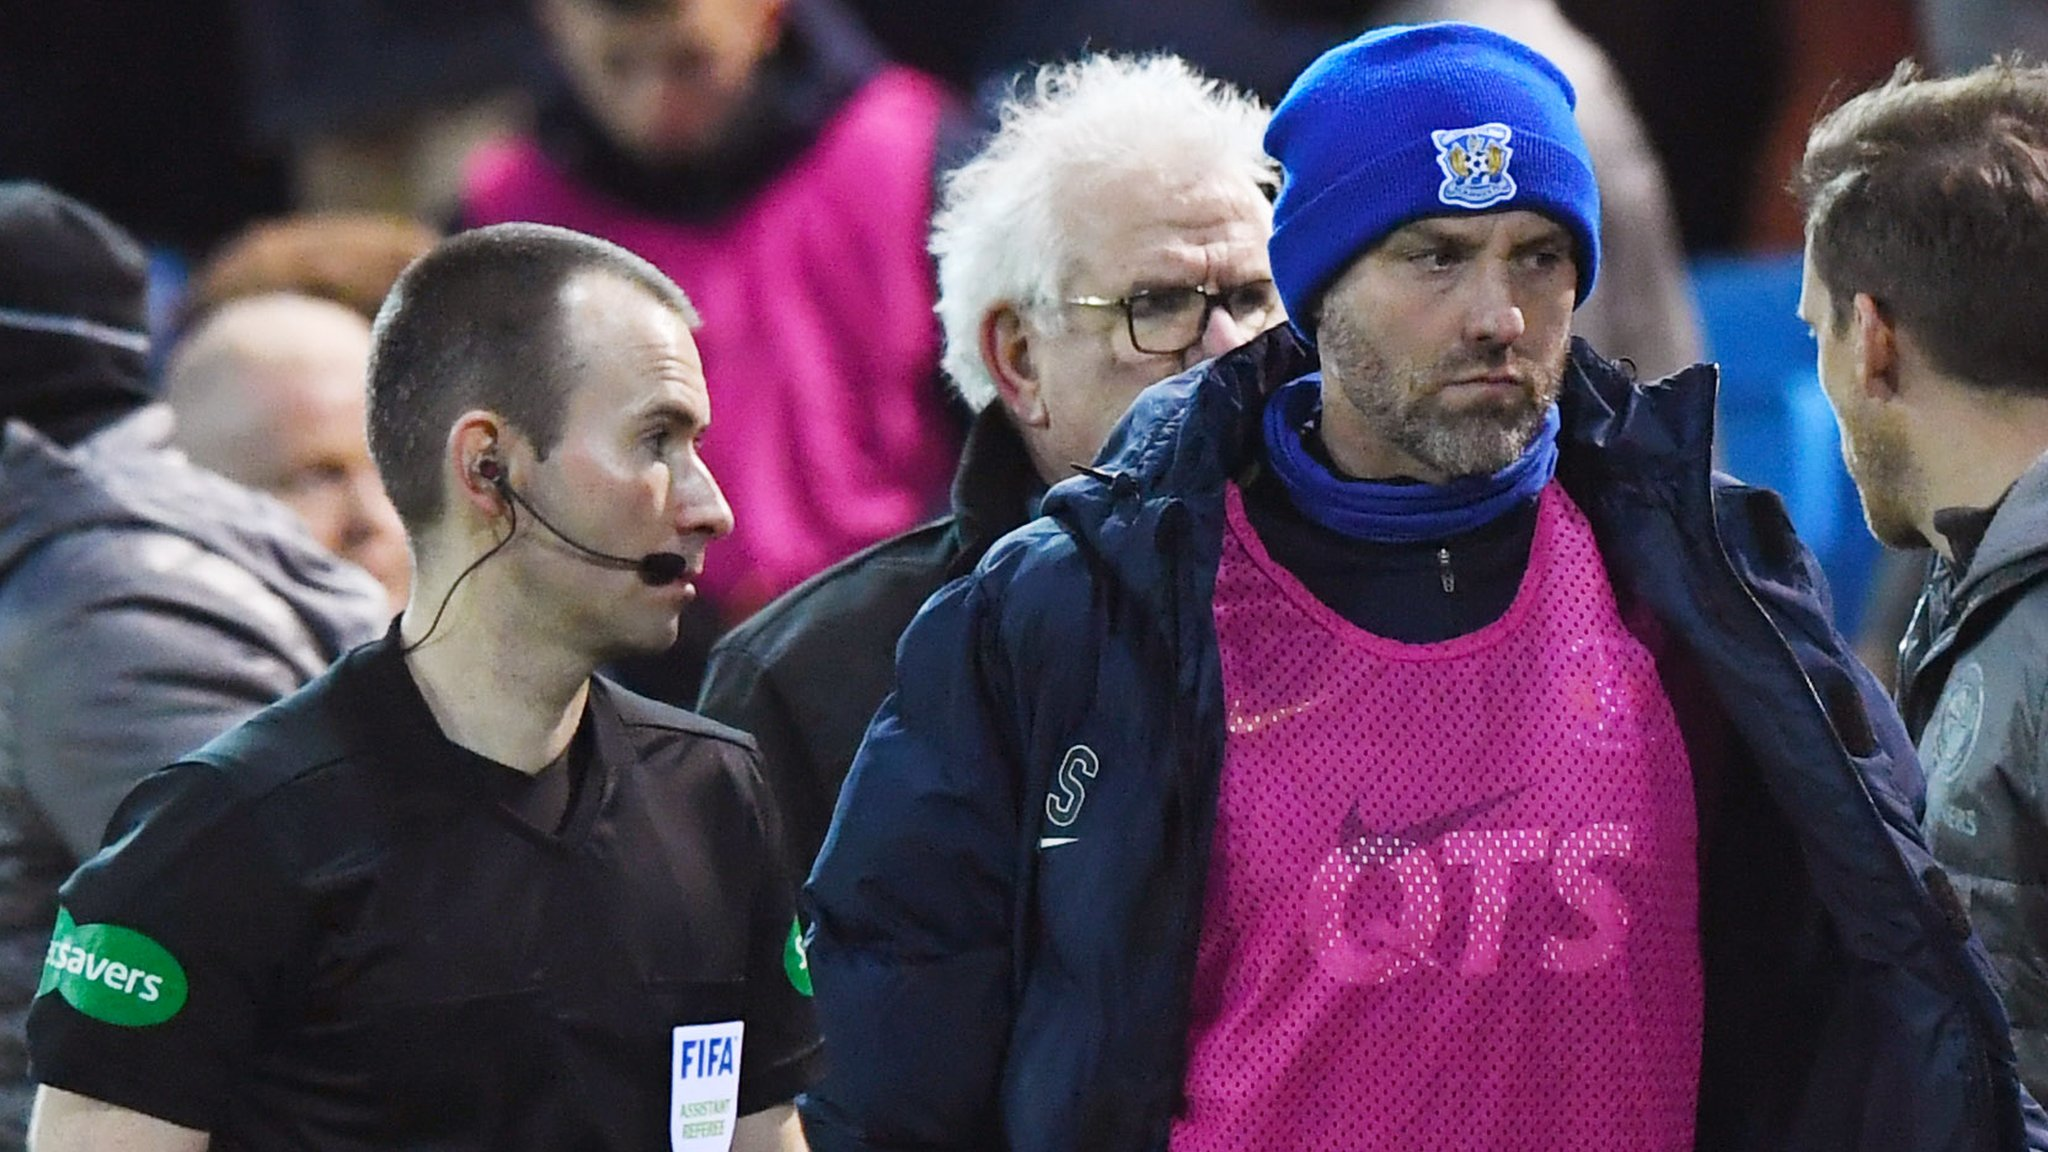 Celtic fans lambasted by Kilmarnock's Kris Boyd after coin throwing and 'sectarian' abuse